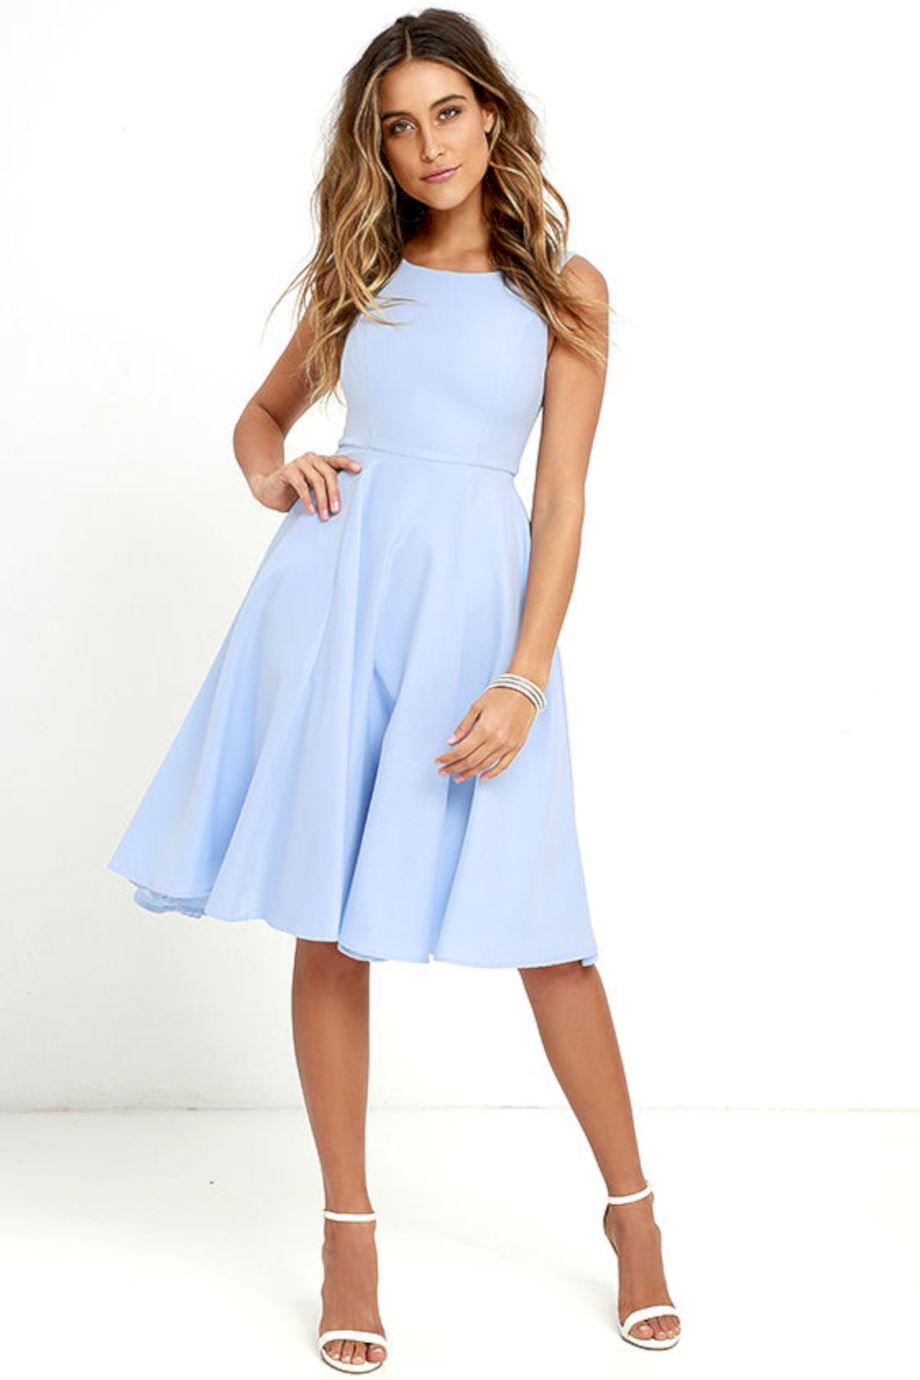 Formal midi dresses outfits 62